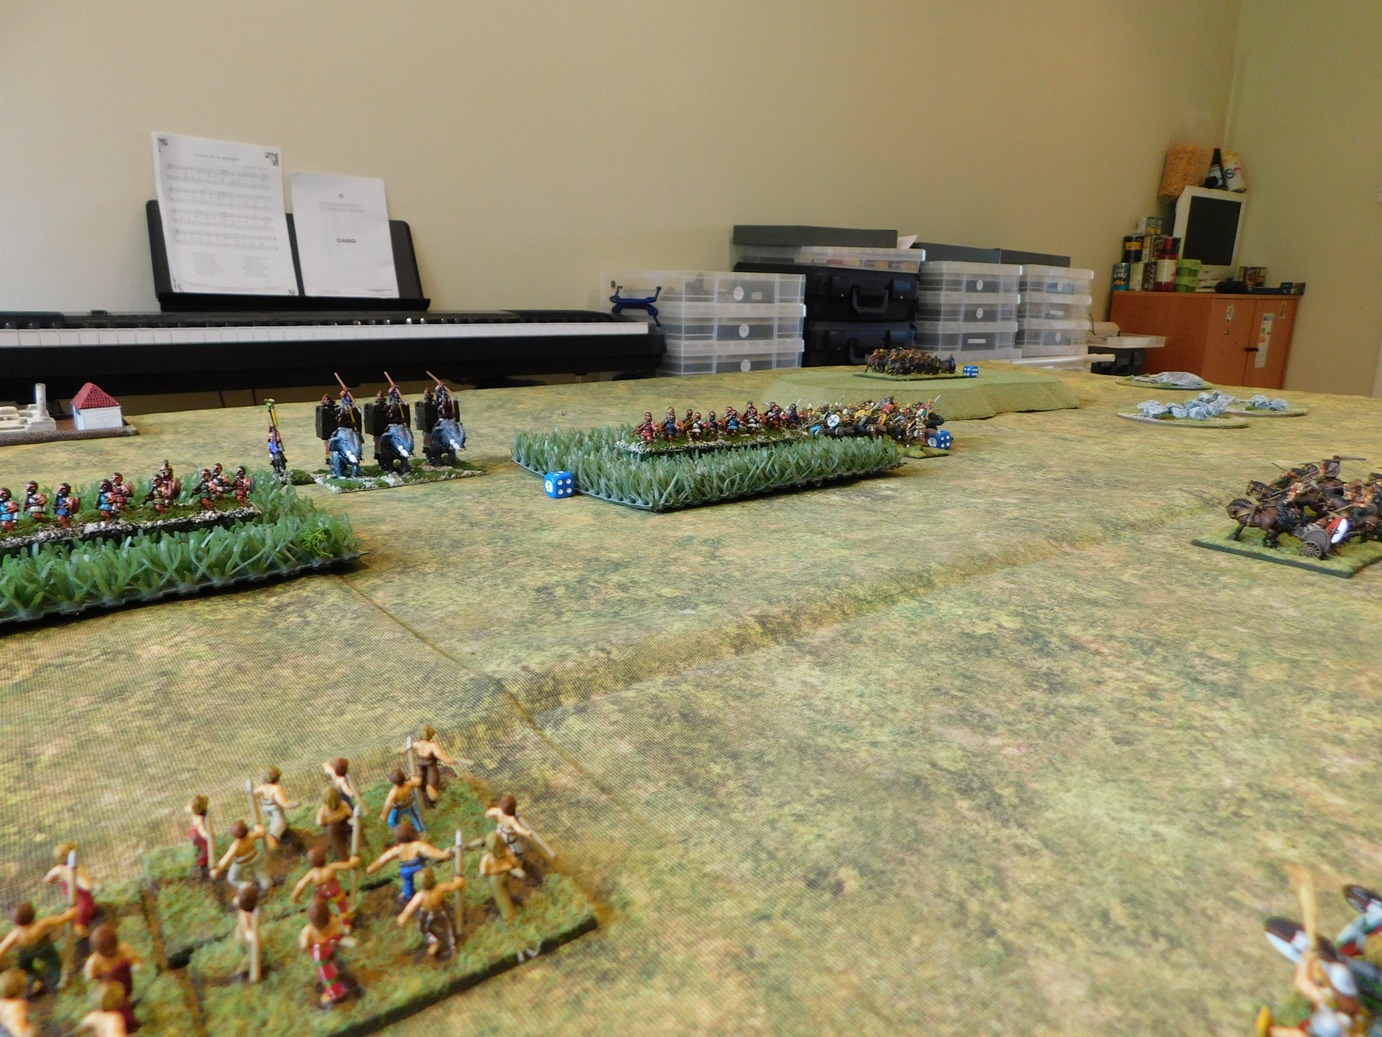 You can see my outflanking chariots at the back on the right (on the hill)